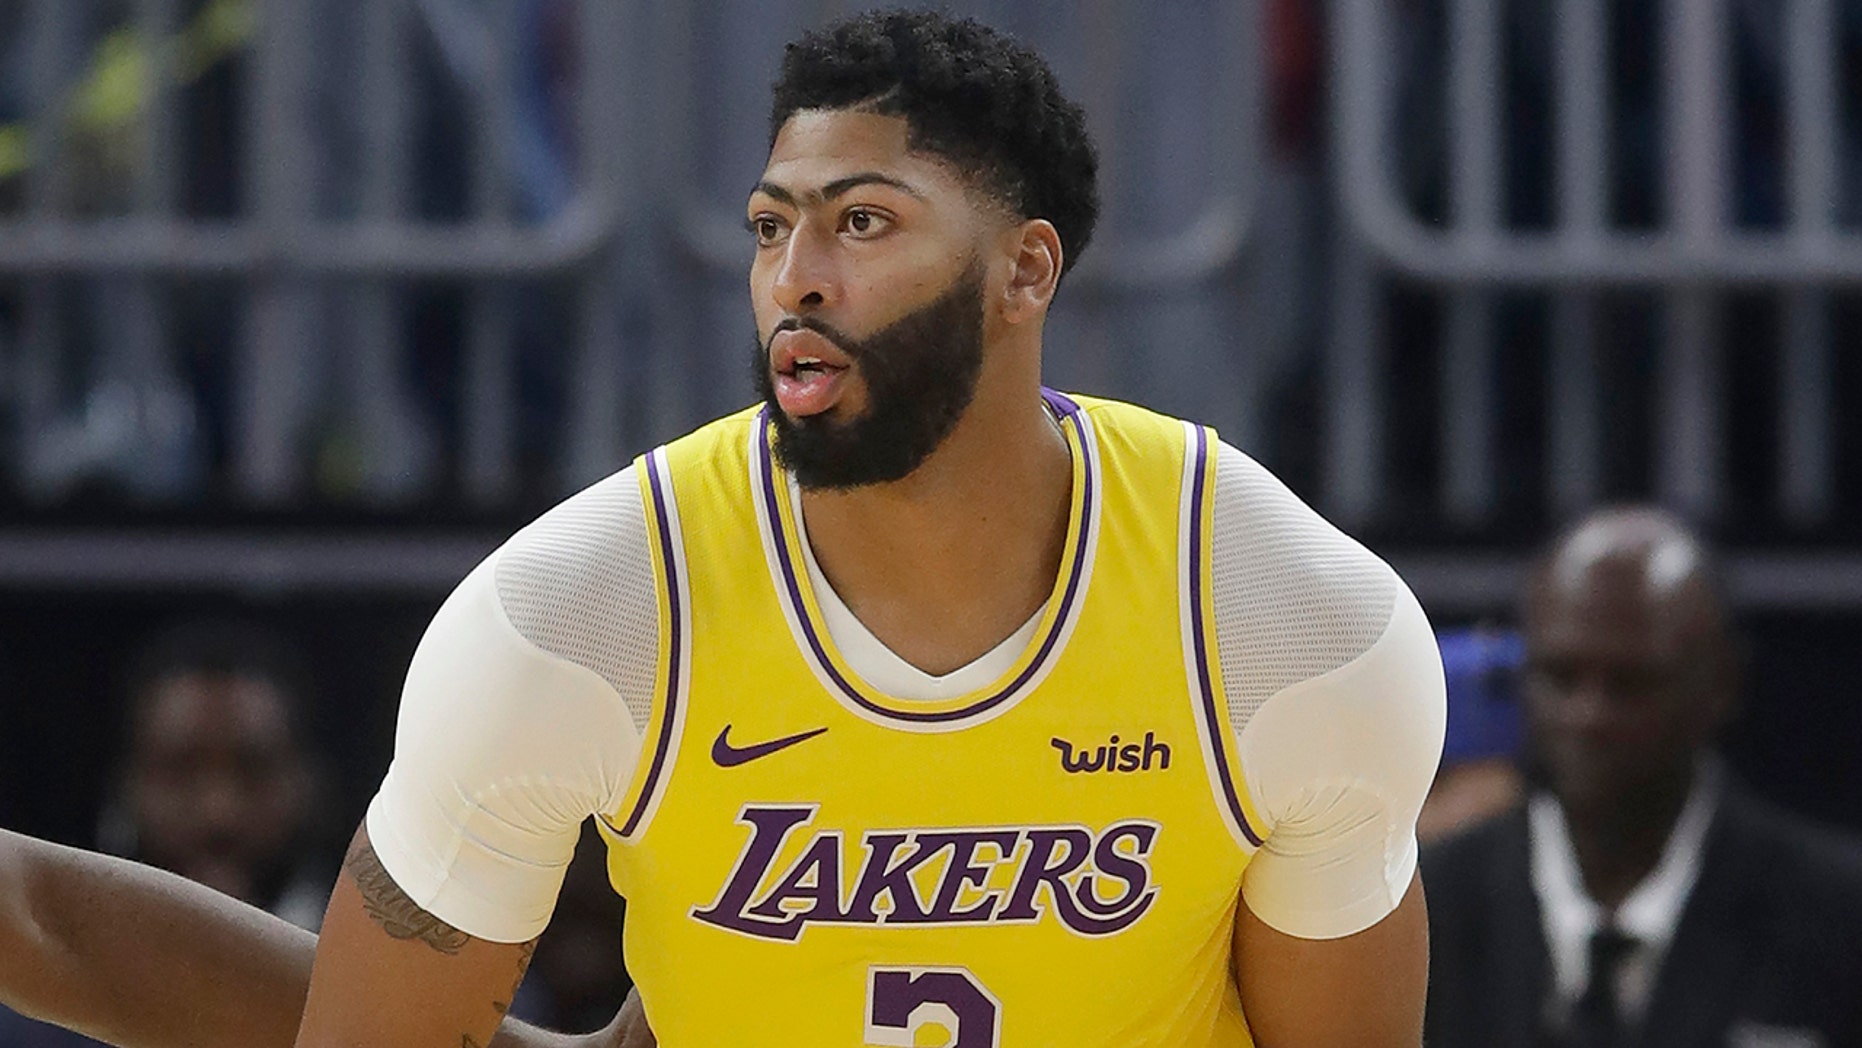 Westlake Legal Group NBA-Anthony-Davis4 Lakers' Anthony Davis grateful thumb injury isn't serious fox-news/sports/nba/los-angeles-lakers fox-news/sports/nba fox-news/person/anthony-davis fnc/sports fnc Associated Press article 3519a4f9-53dc-53a2-a7b8-cc262e449da9